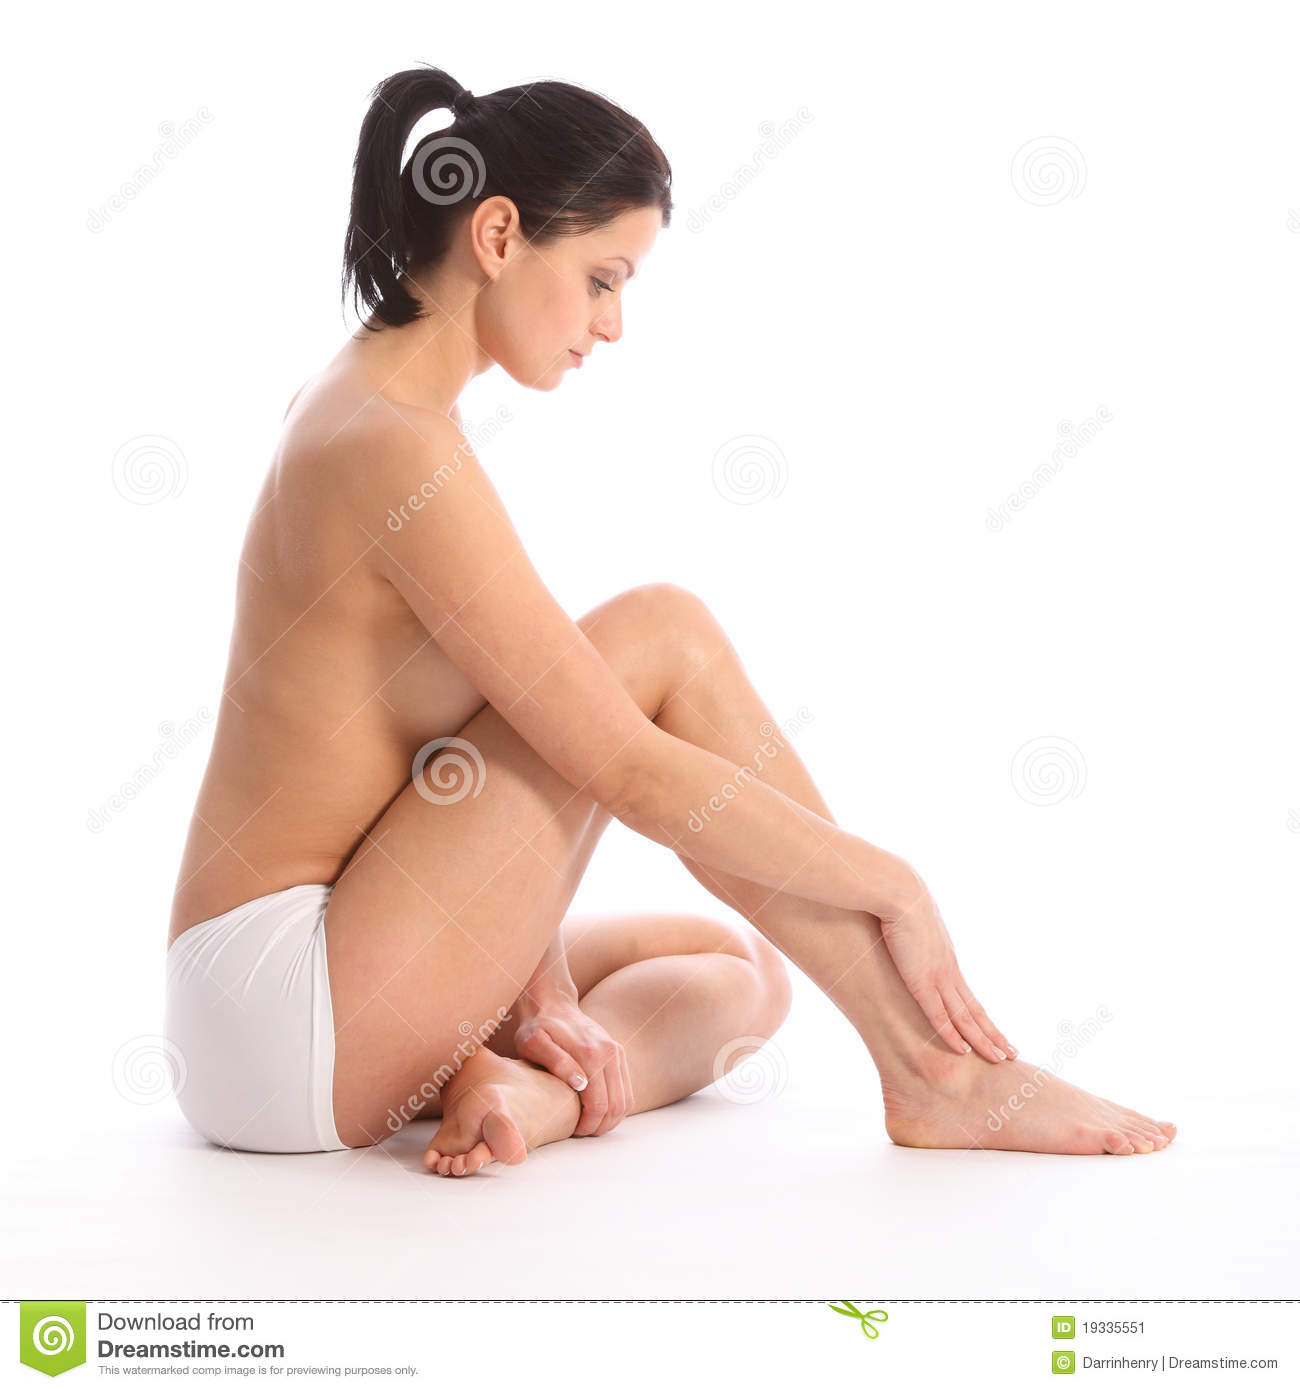 On Floor A Topless Beautiful Healthy Young Woman Wearing White Sports